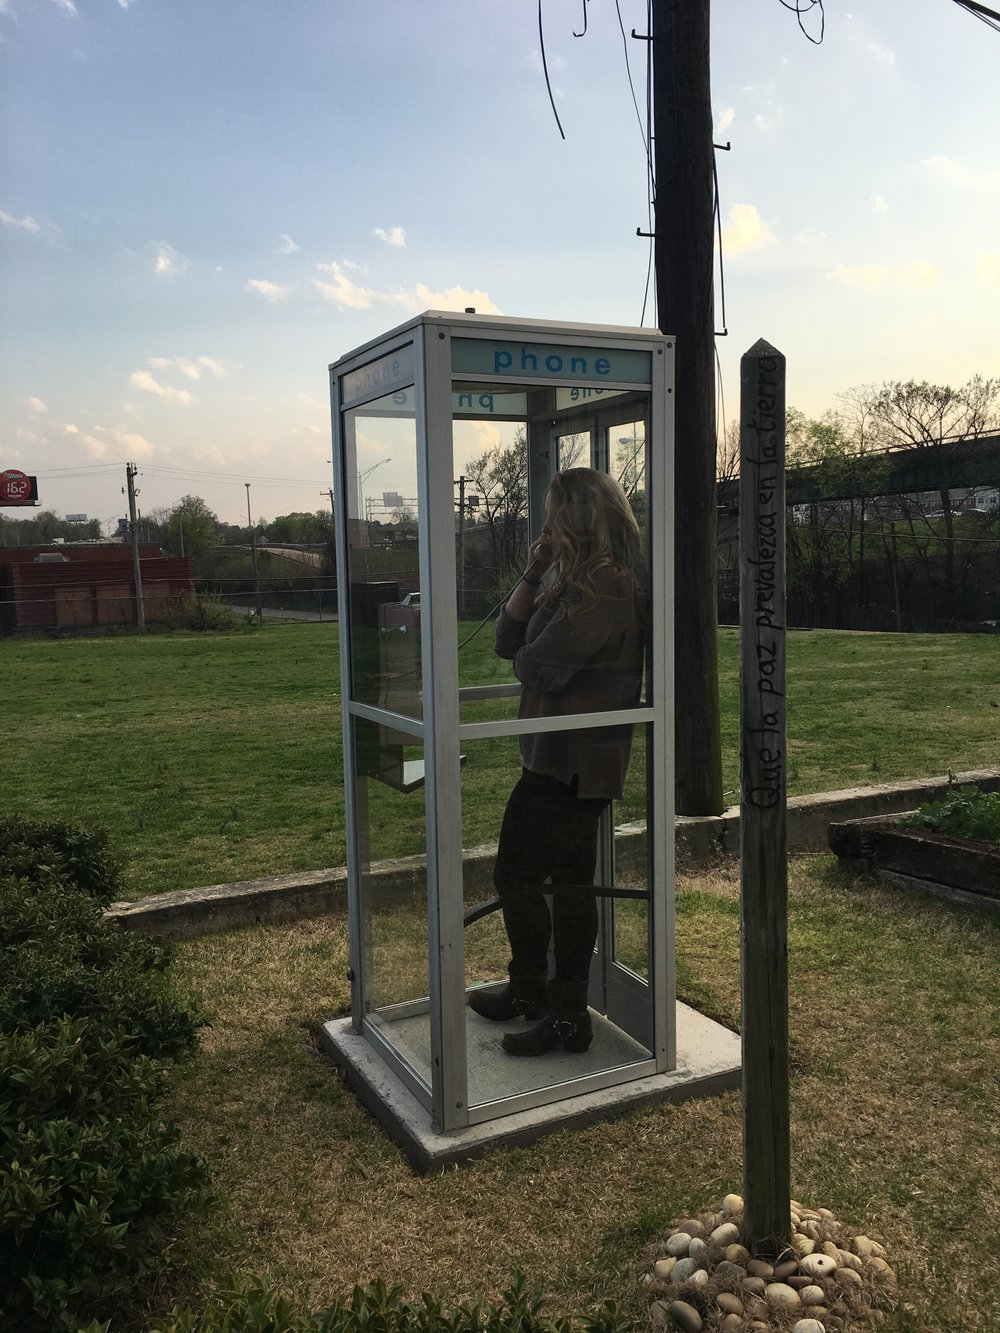 phonebooth-photo2.JPG